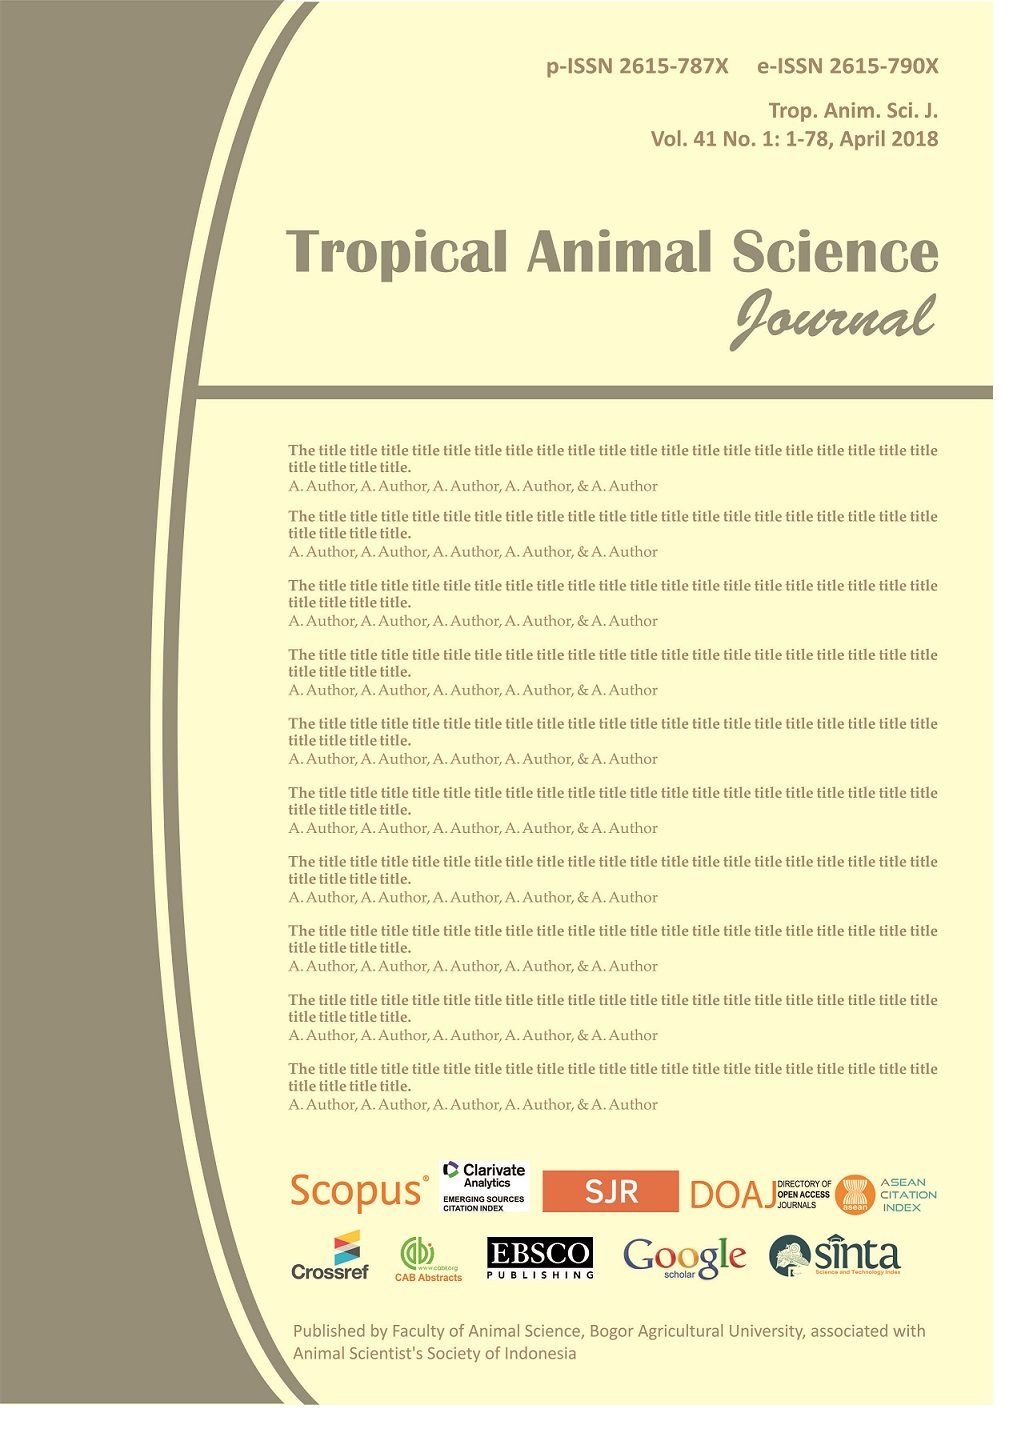 Tropical Animal Science Journal